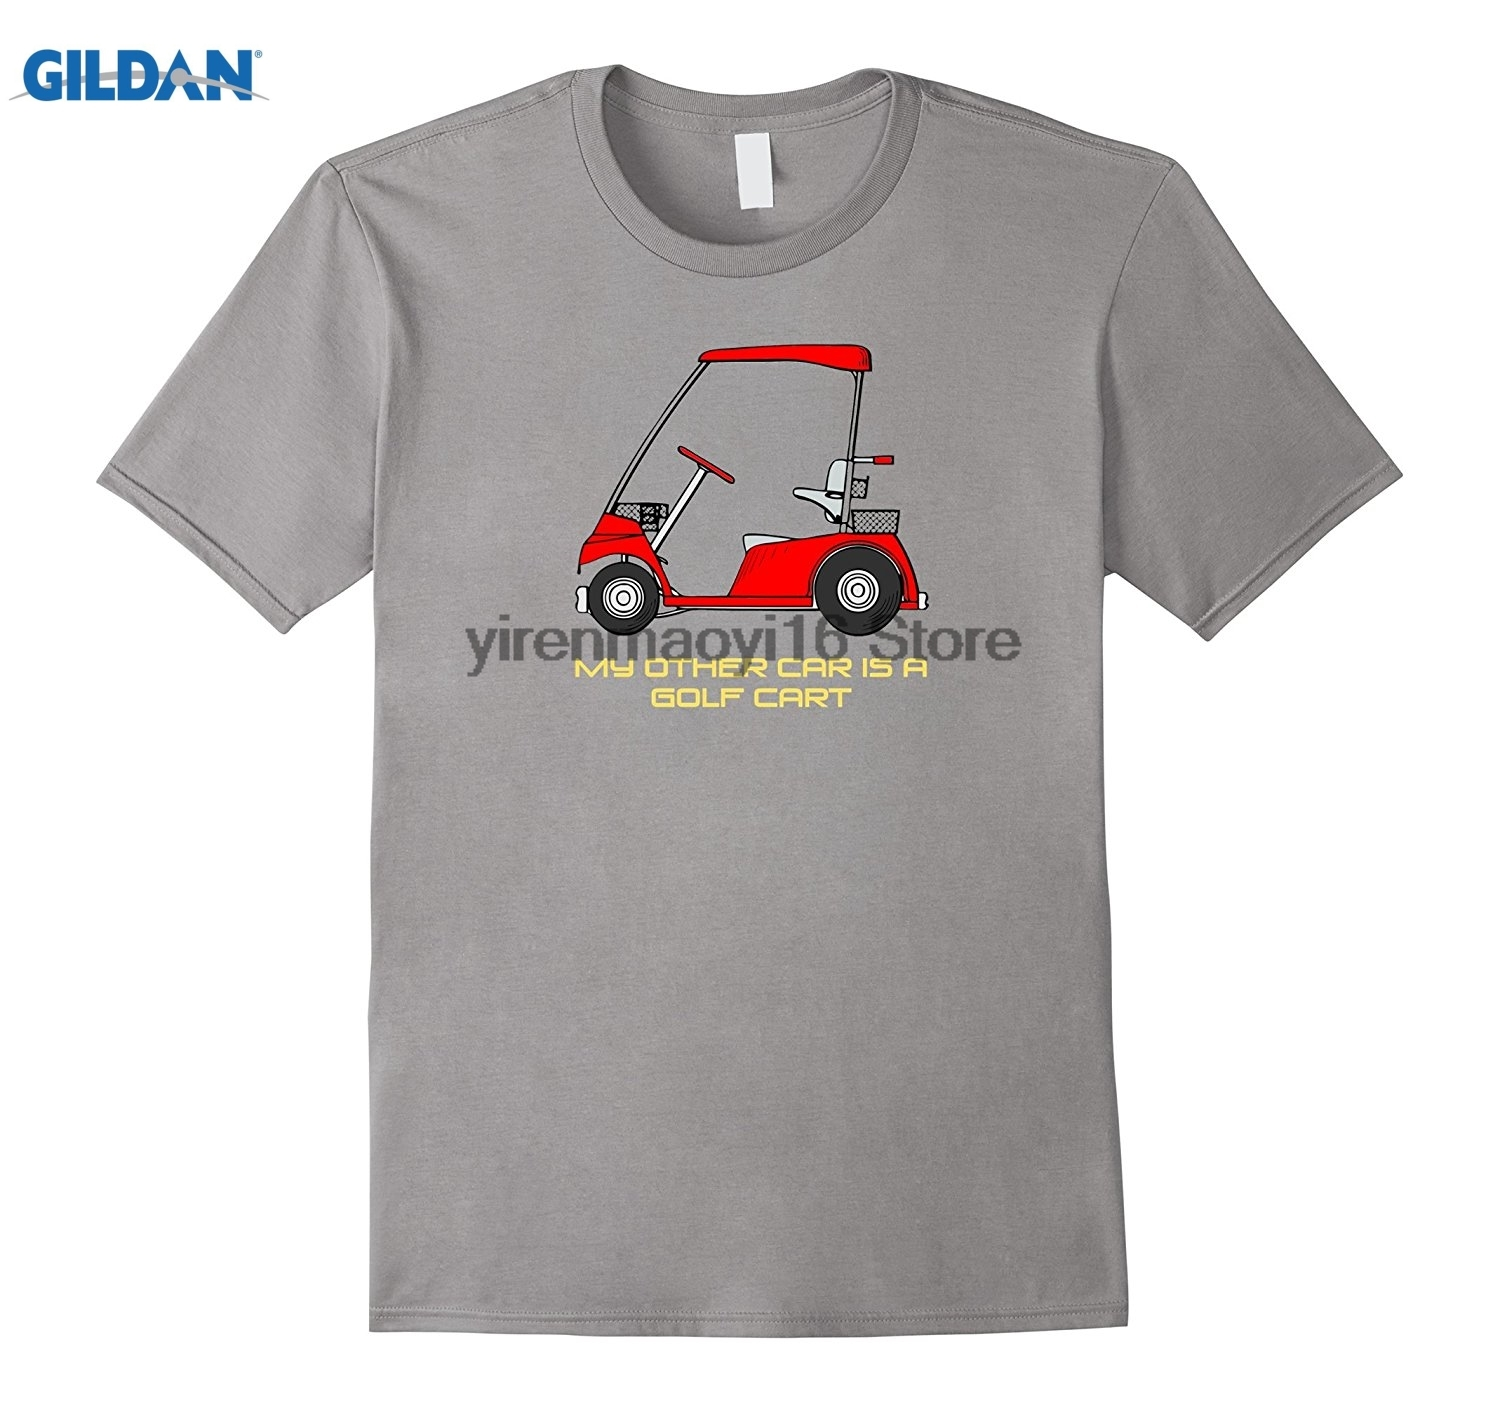 GILDAN 2018 My Other Car Is A Cart T-Shirt Golfer Tee Shirt ...